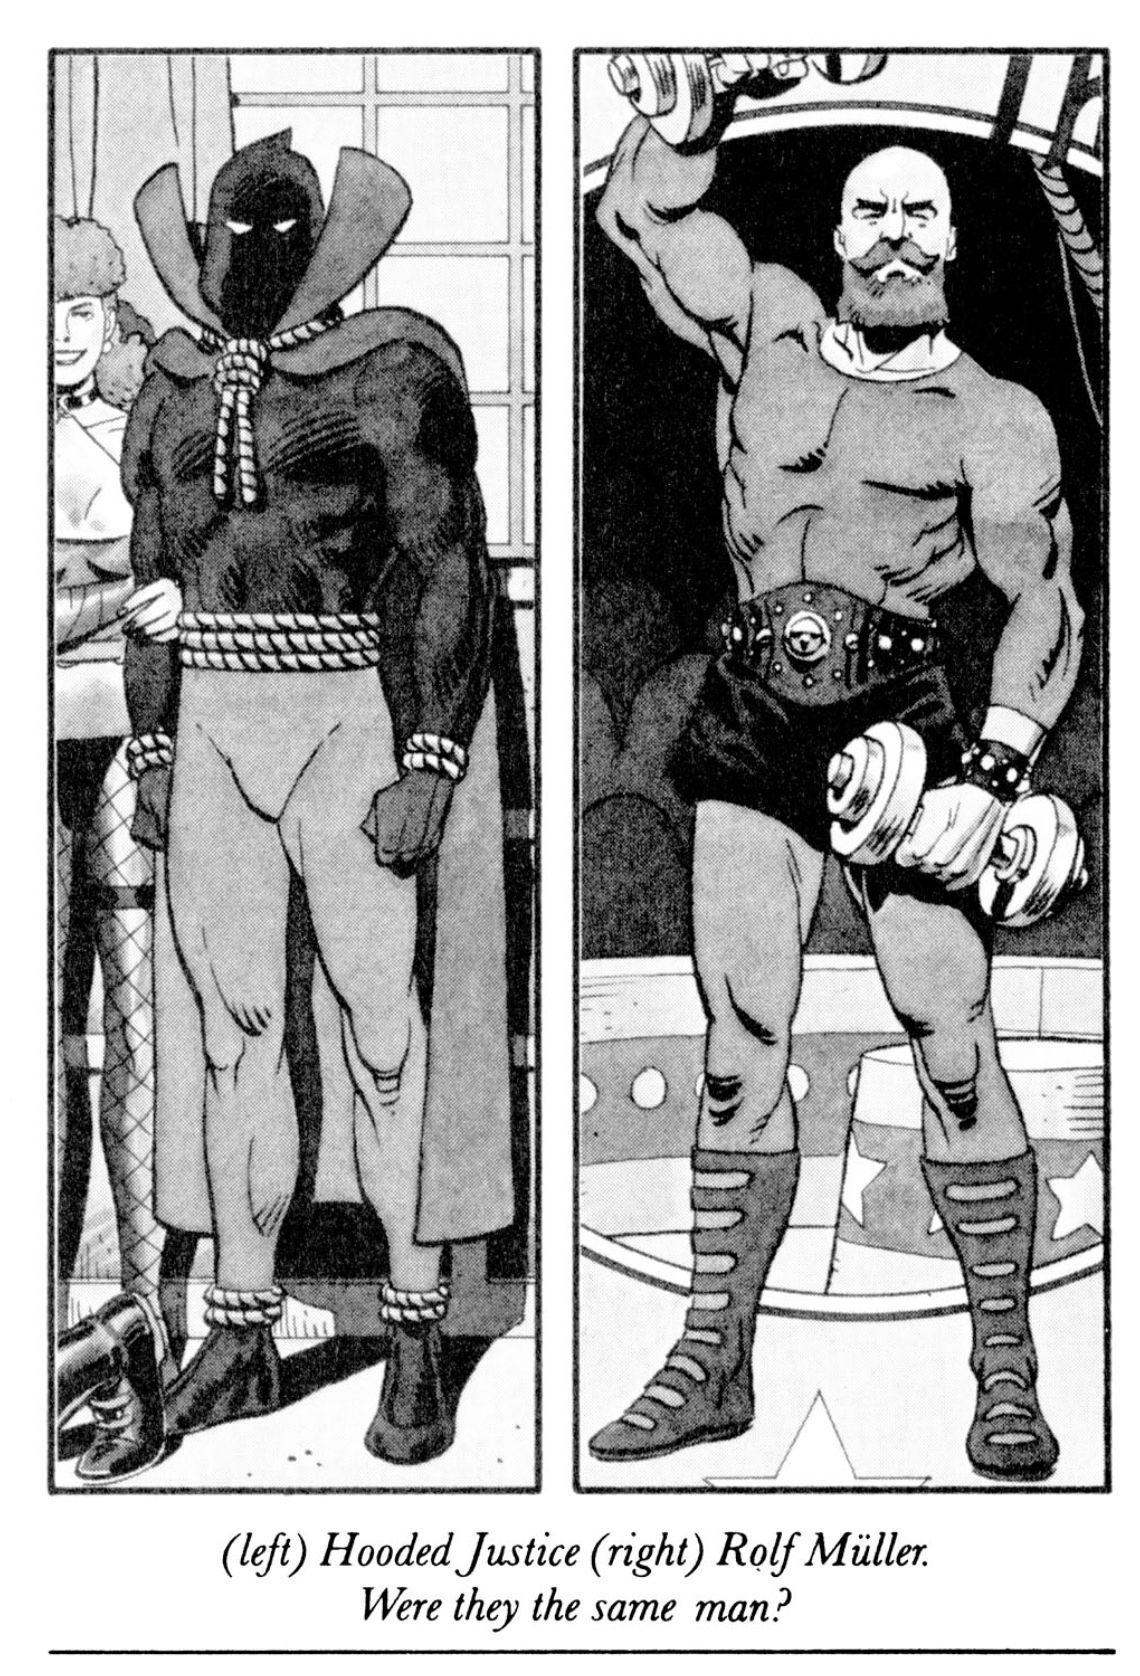 Left: Hooded Justice, right, Rolf Müller, two men that Hollis Mason/Nite Owl theorized might have been the same person, in Watchmen, DC Comics (1986).